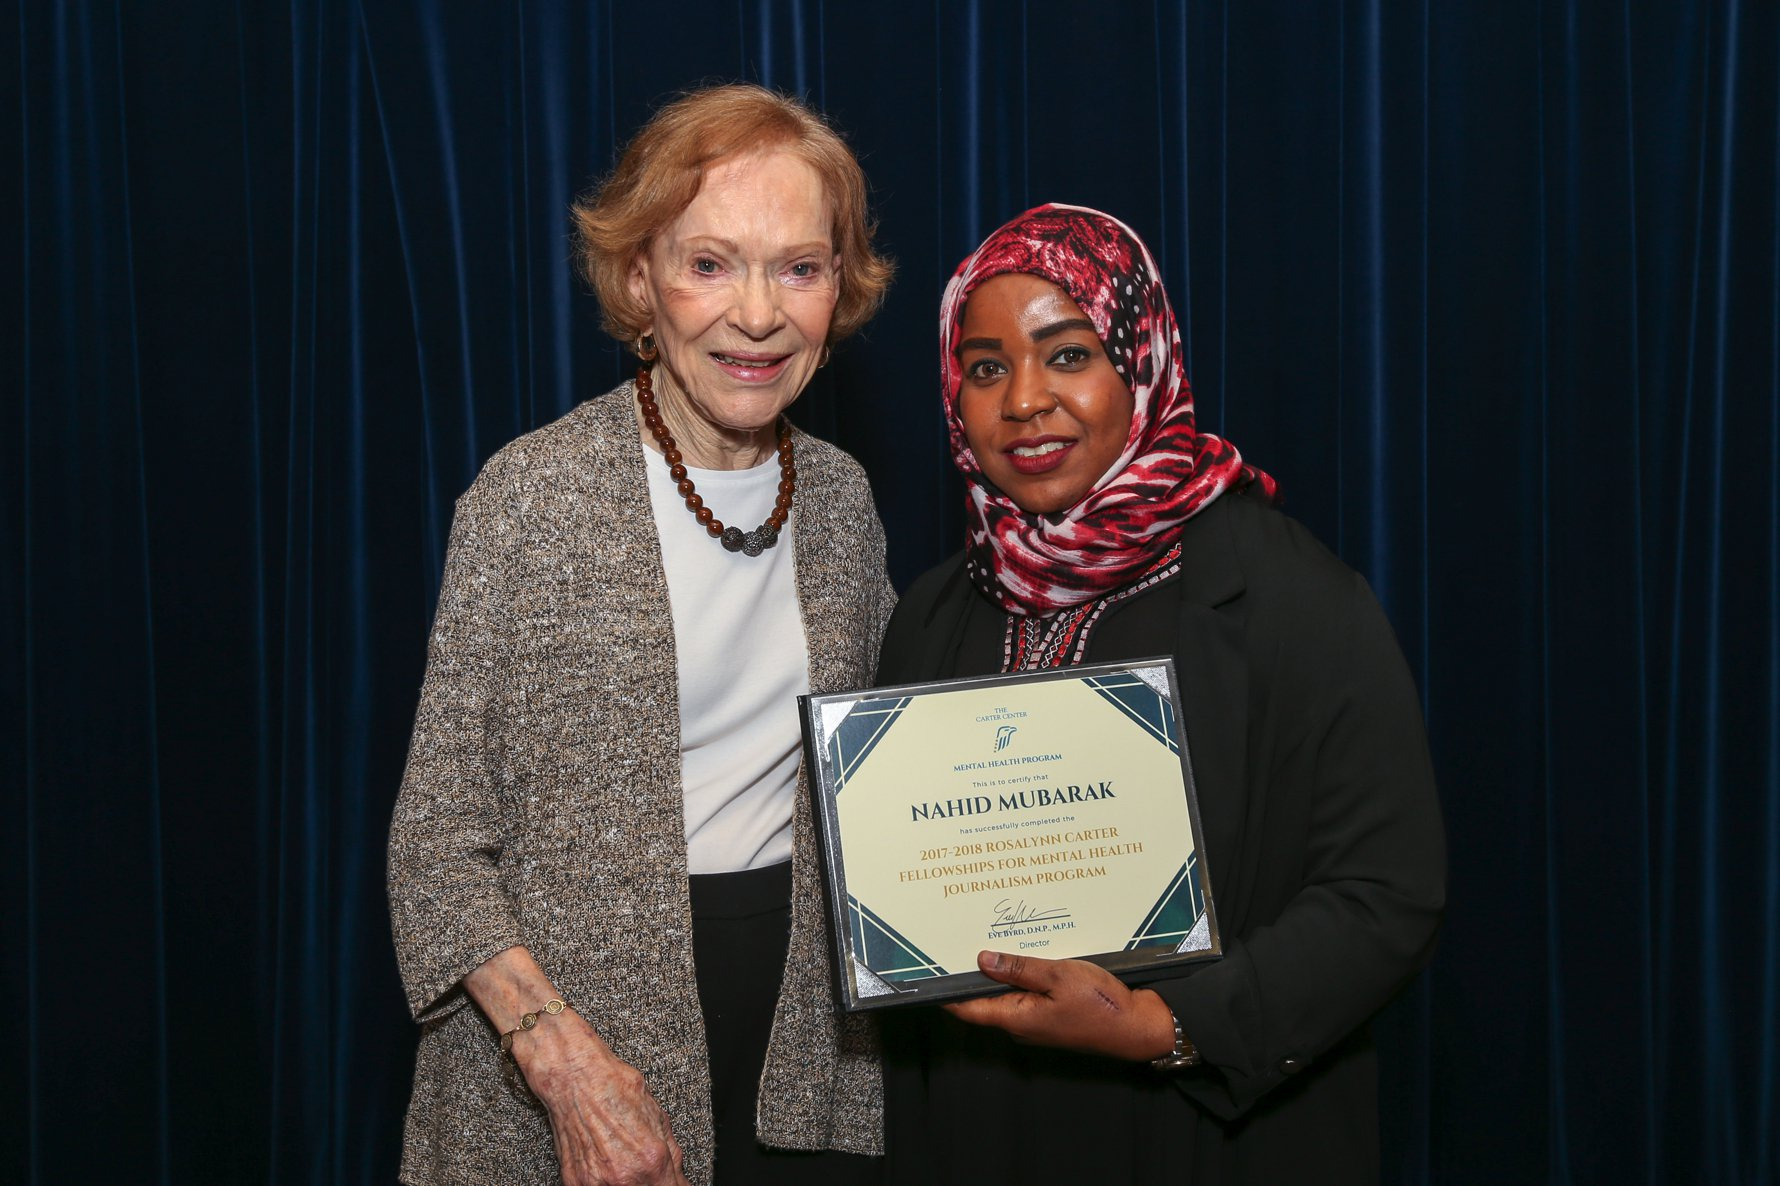 Nahid inspires the community to support medical research